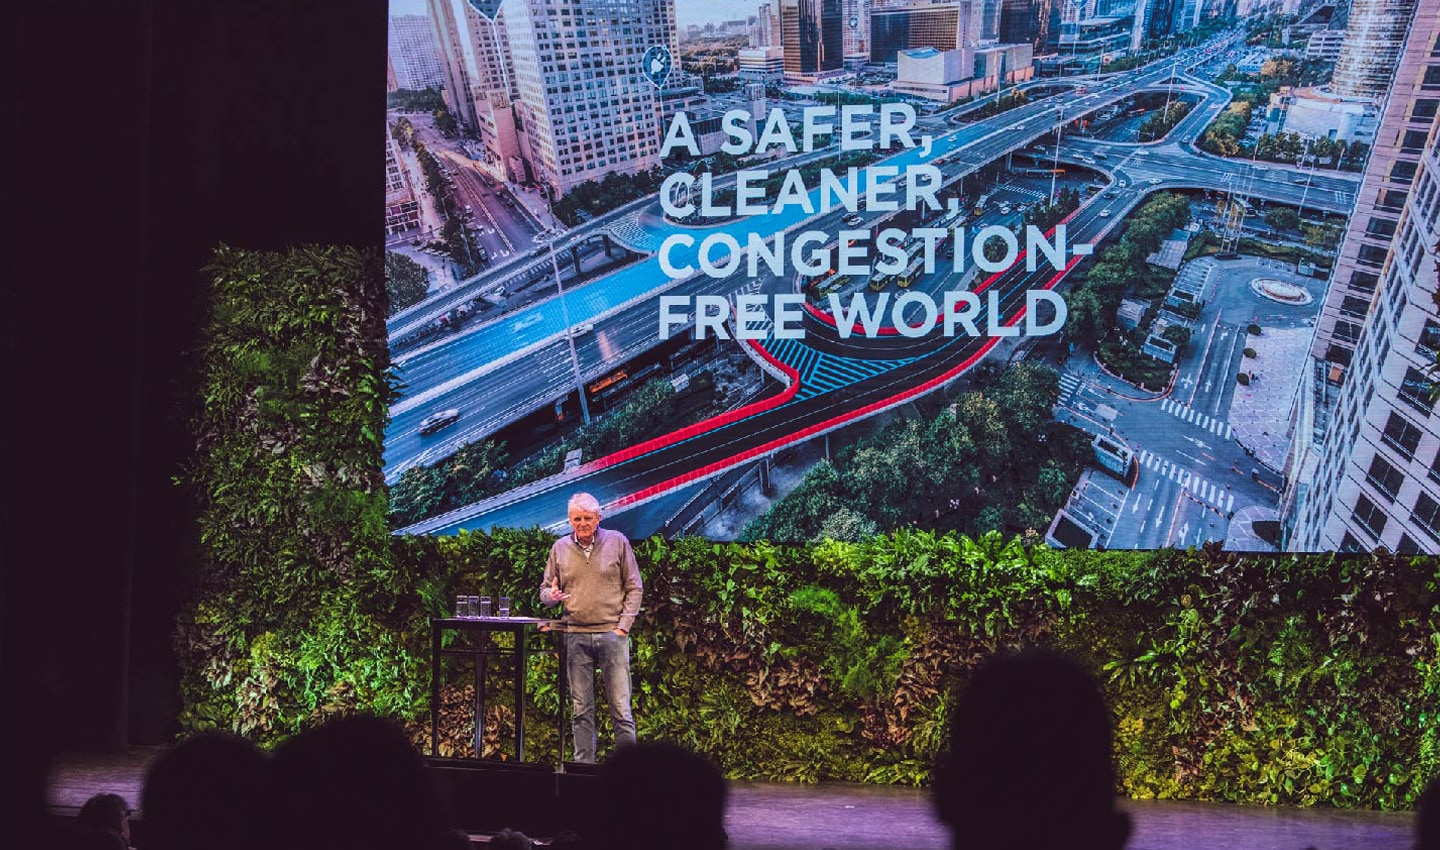 Seeing the power of TomTom's technology, the company is now focused on making the world's roads safer, cleaner, and congestion free.